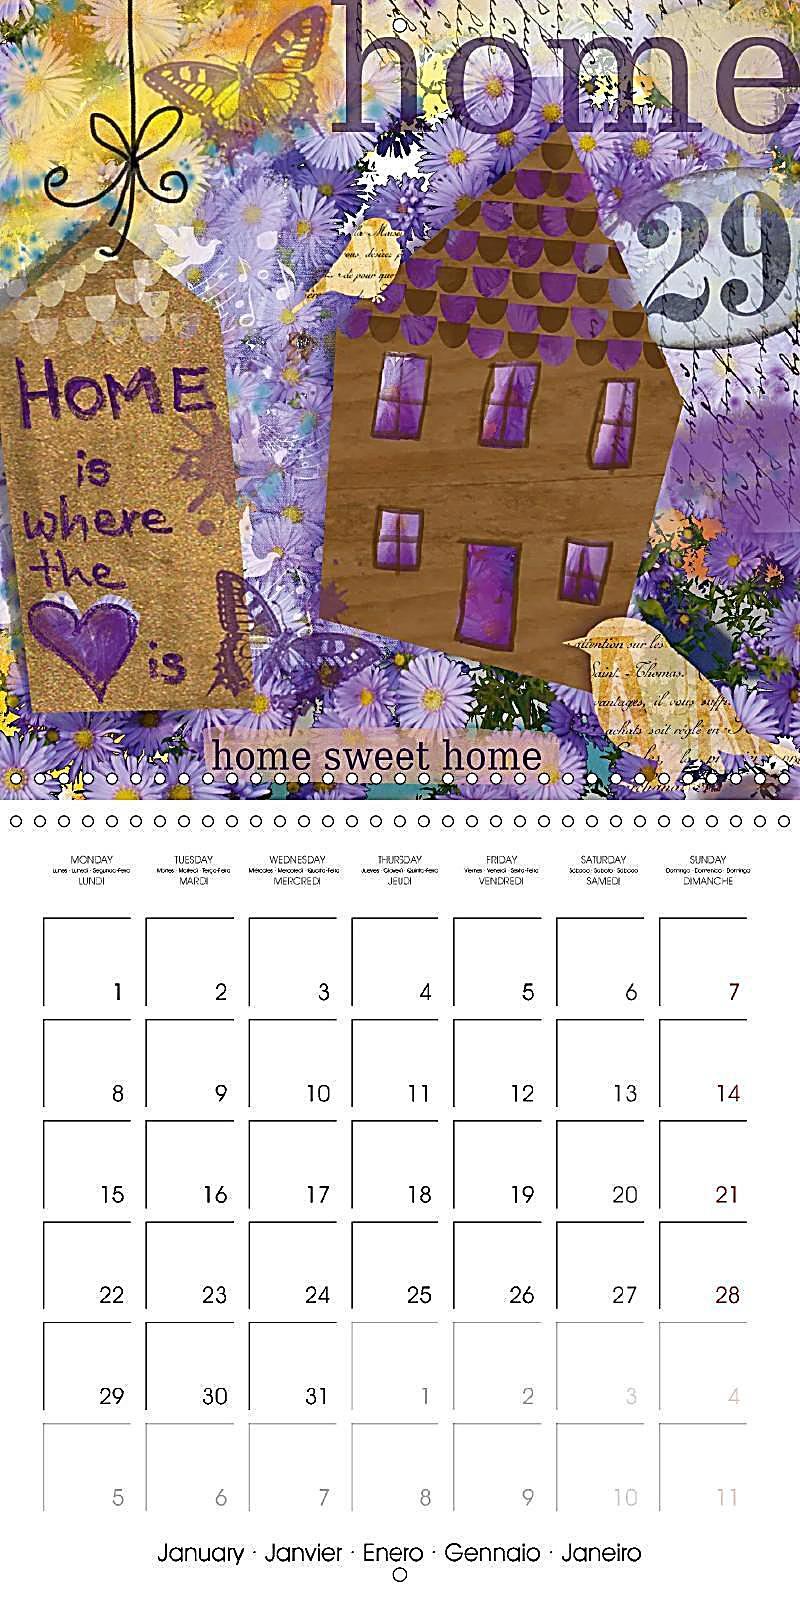 Art Calendar Book : Sheets from an art book wall calendar mm